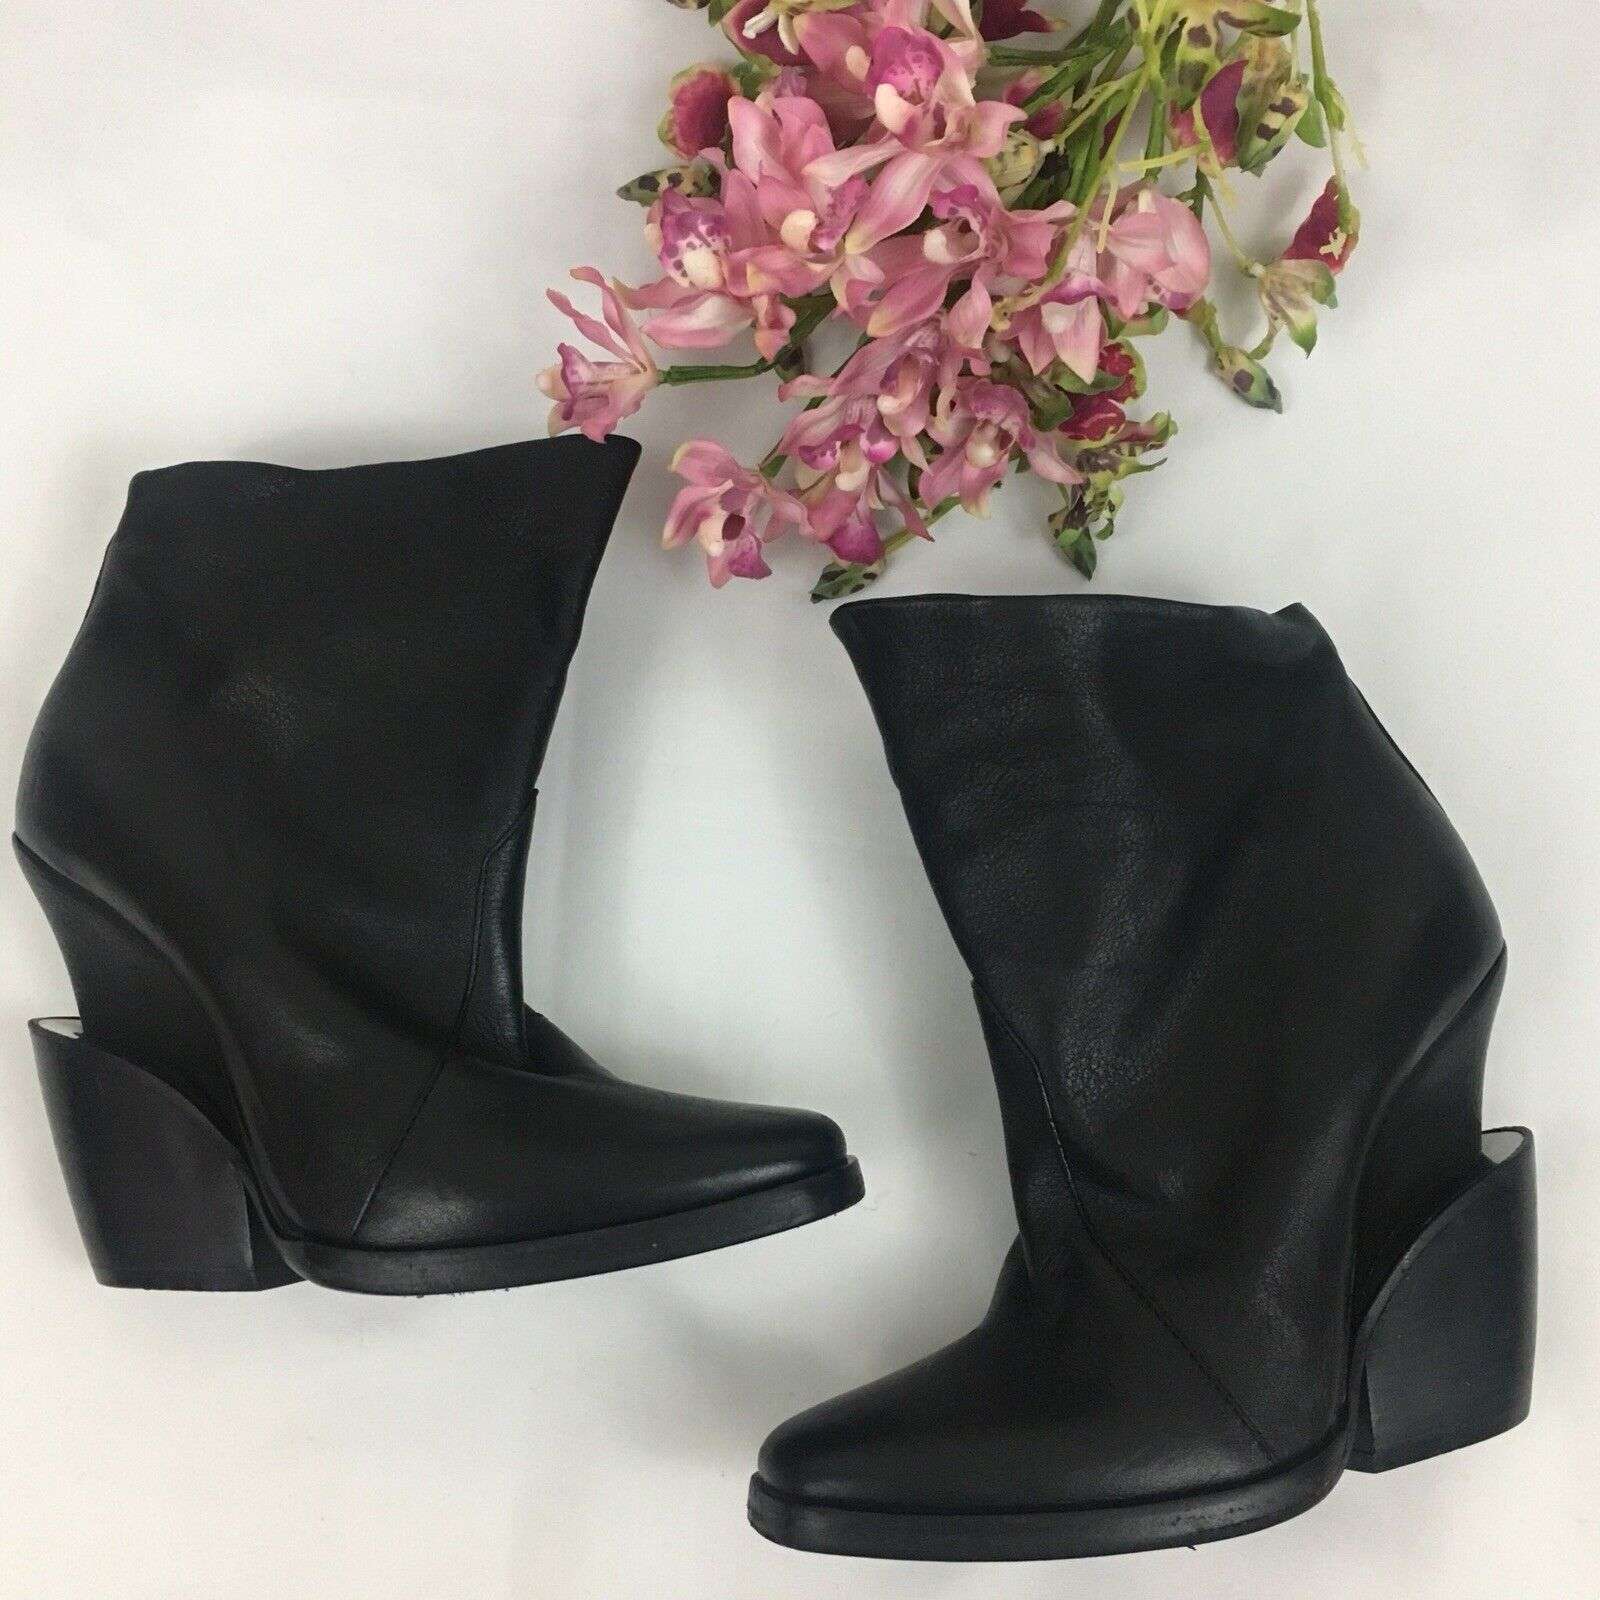 Theyskens' Theory Black Leather 'Elerie Aova' Detailed Heel Boots Size 37.5